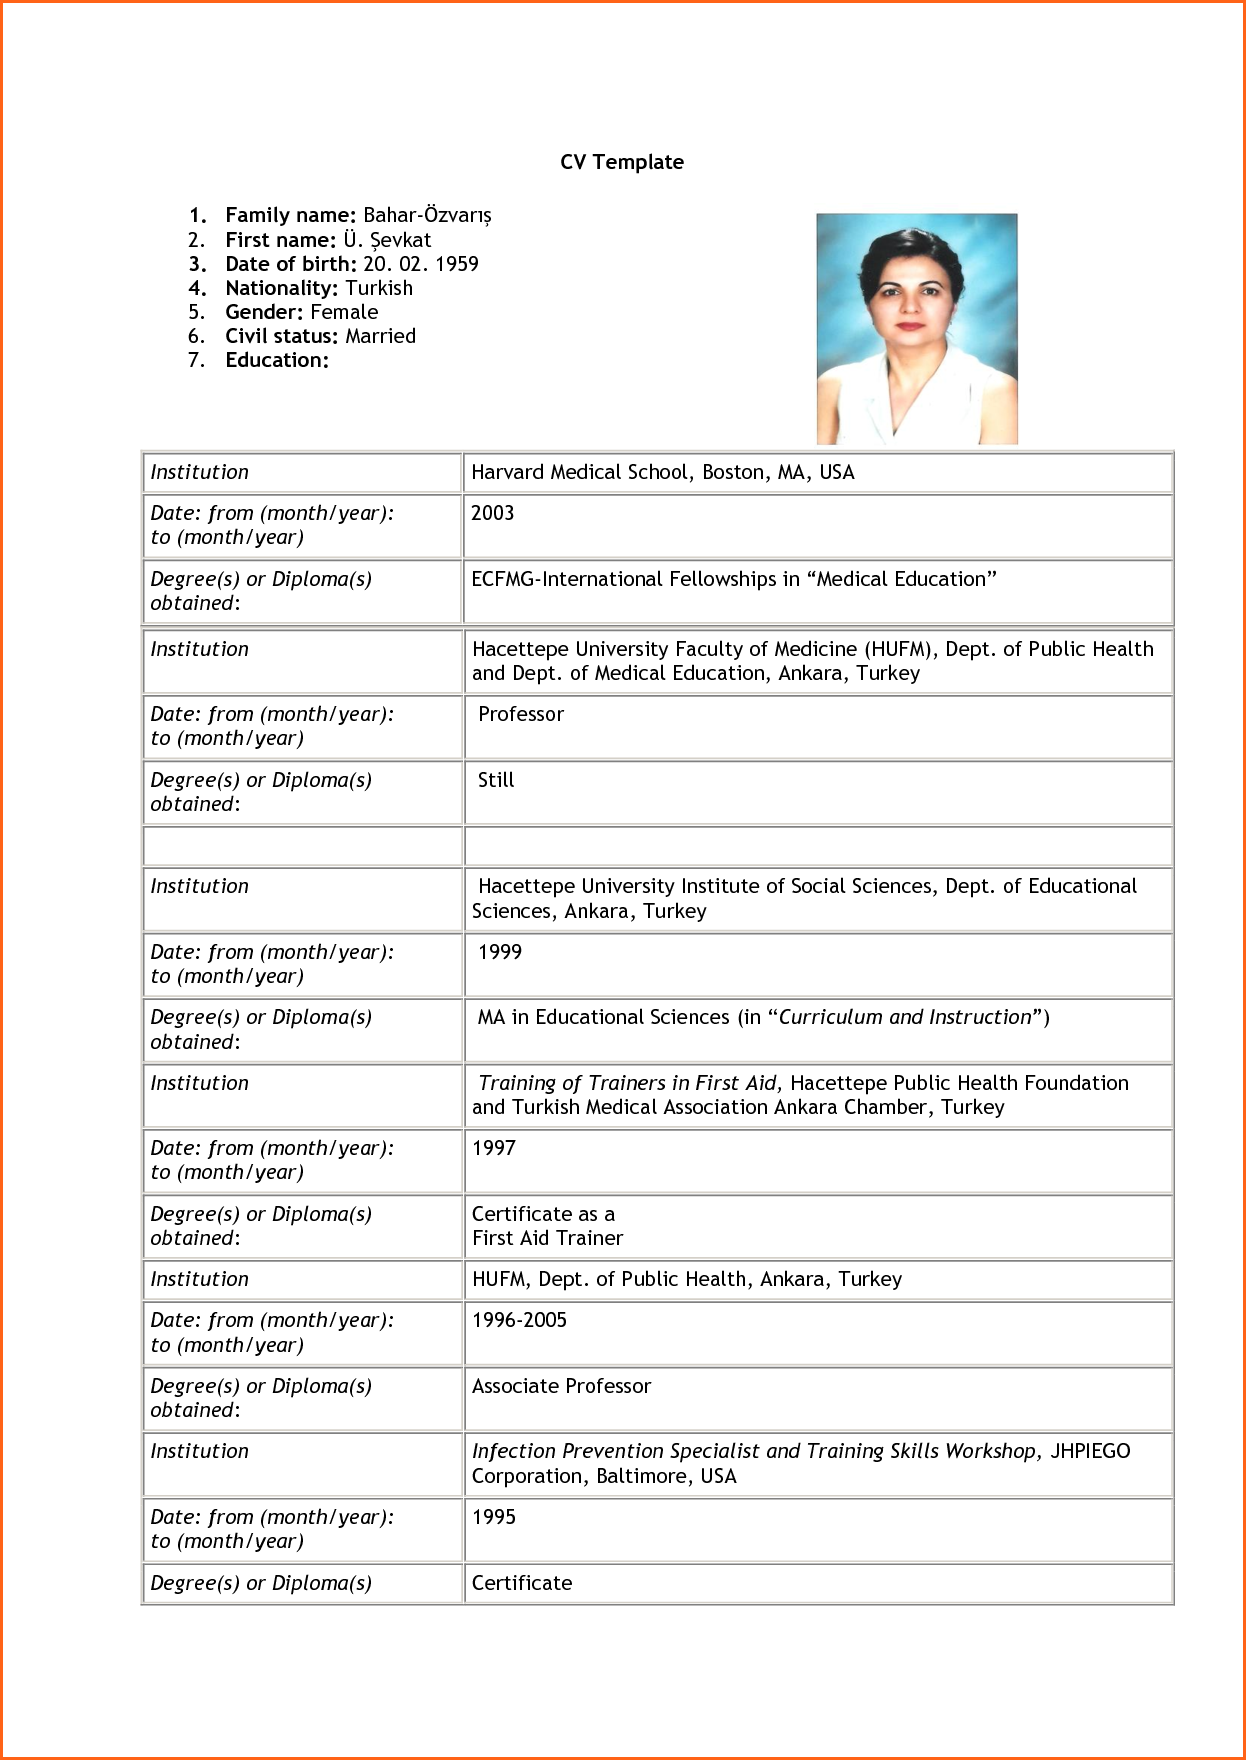 Cv Sample For Job Application Job resume format, Bio